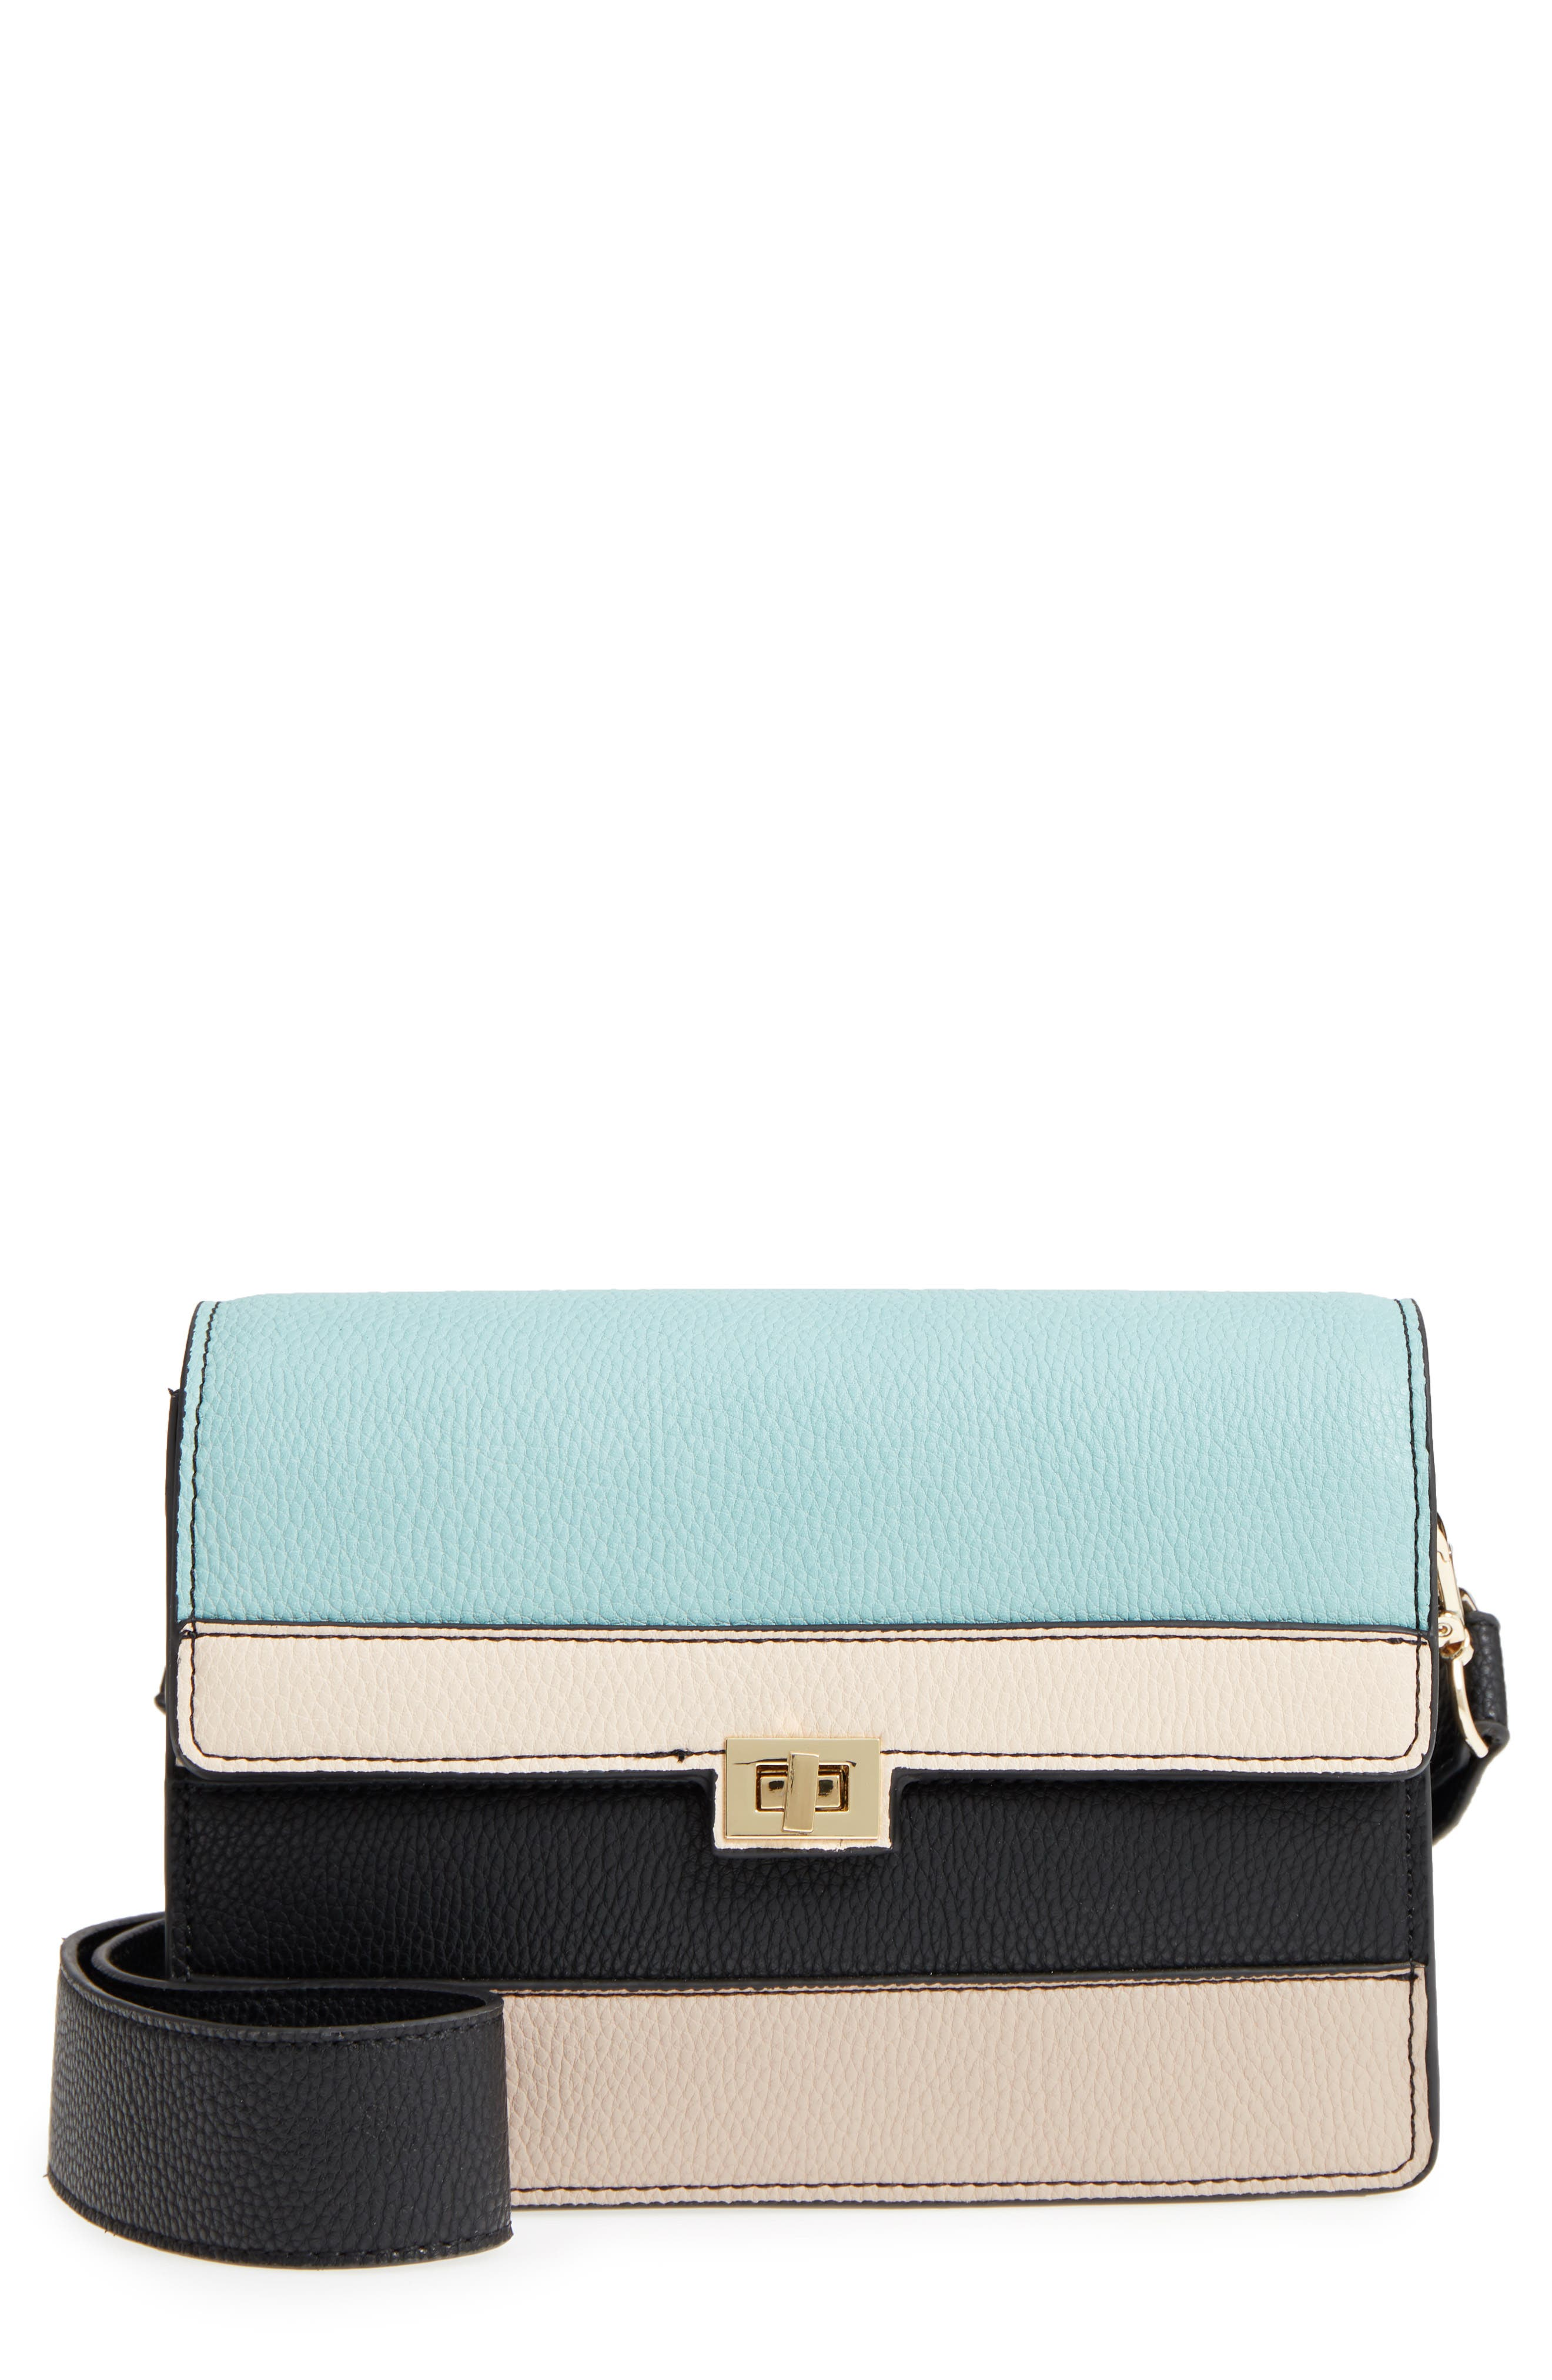 Sari Crossbody Bag,                         Main,                         color, 960